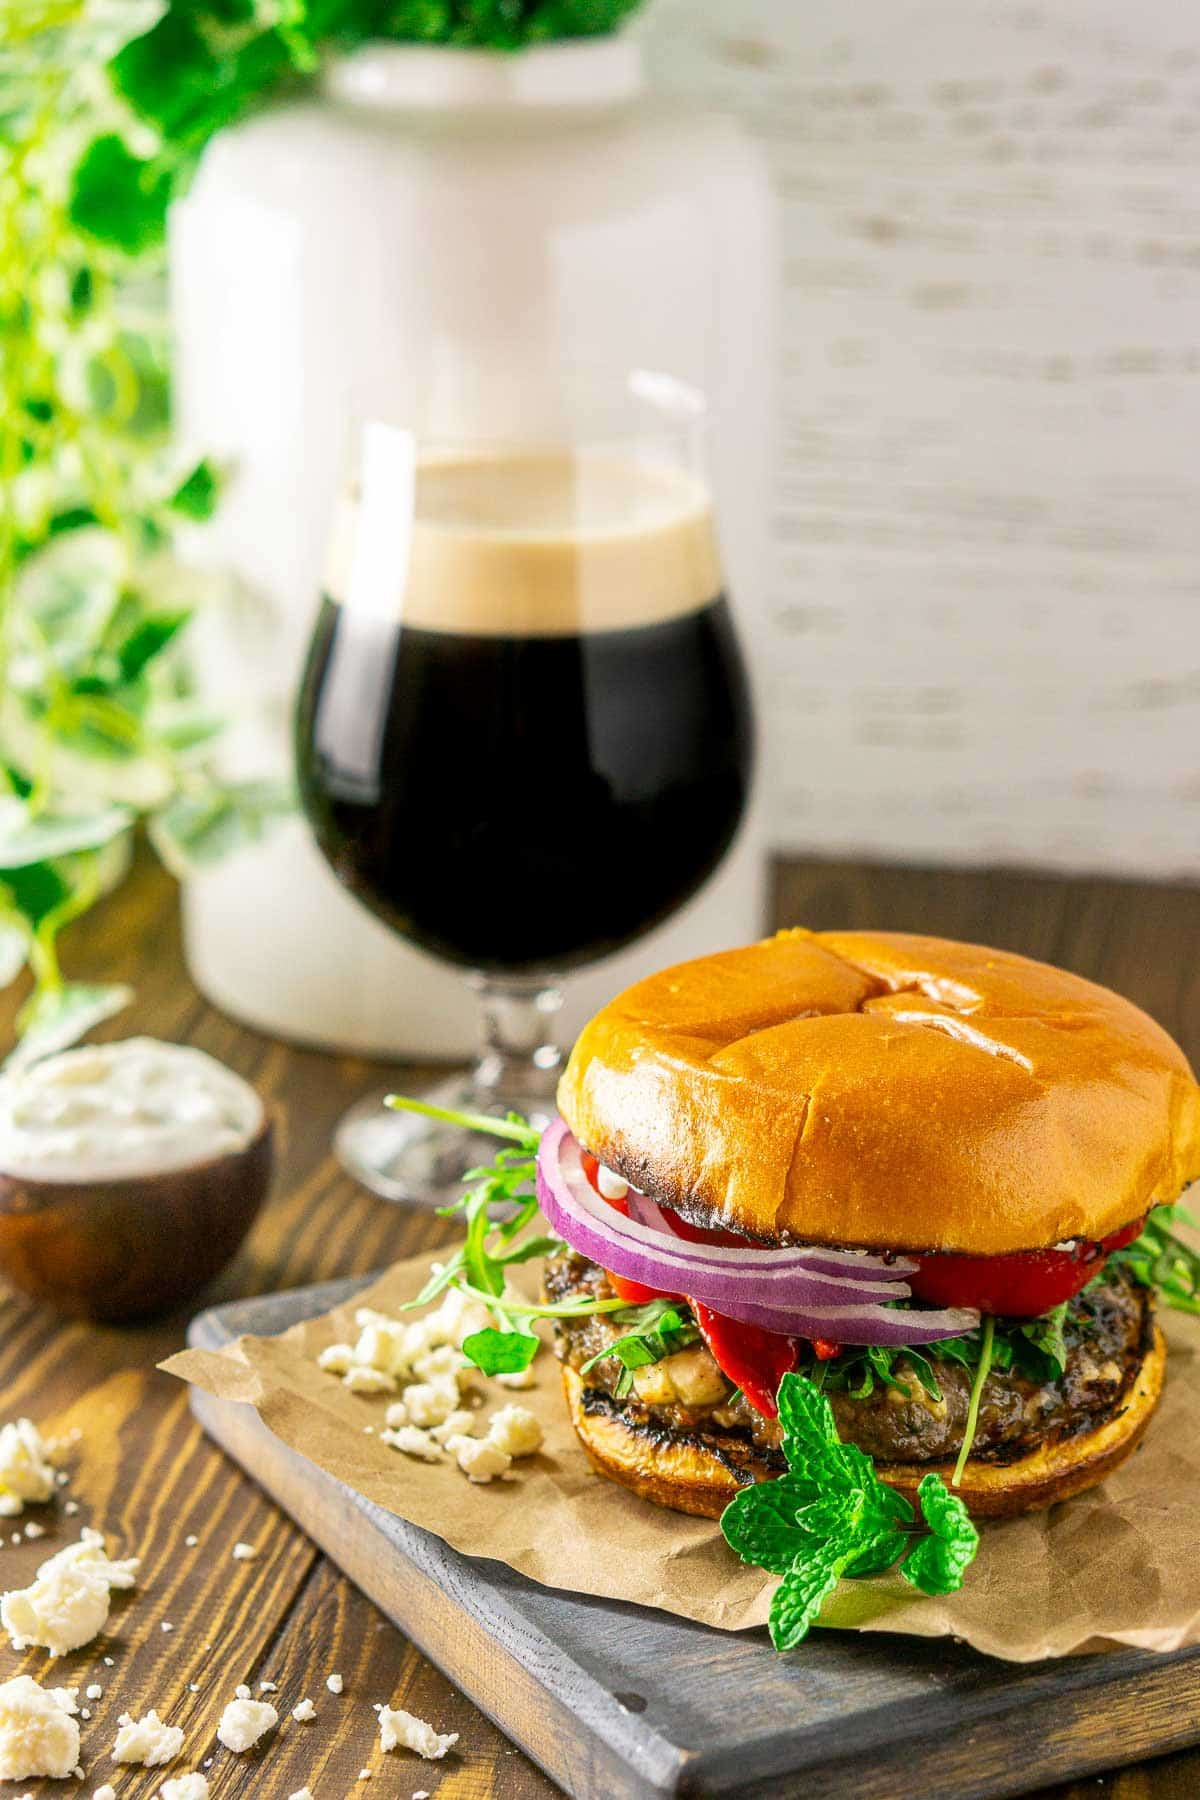 Looking down on a minted lamb burger with the beer to the side.